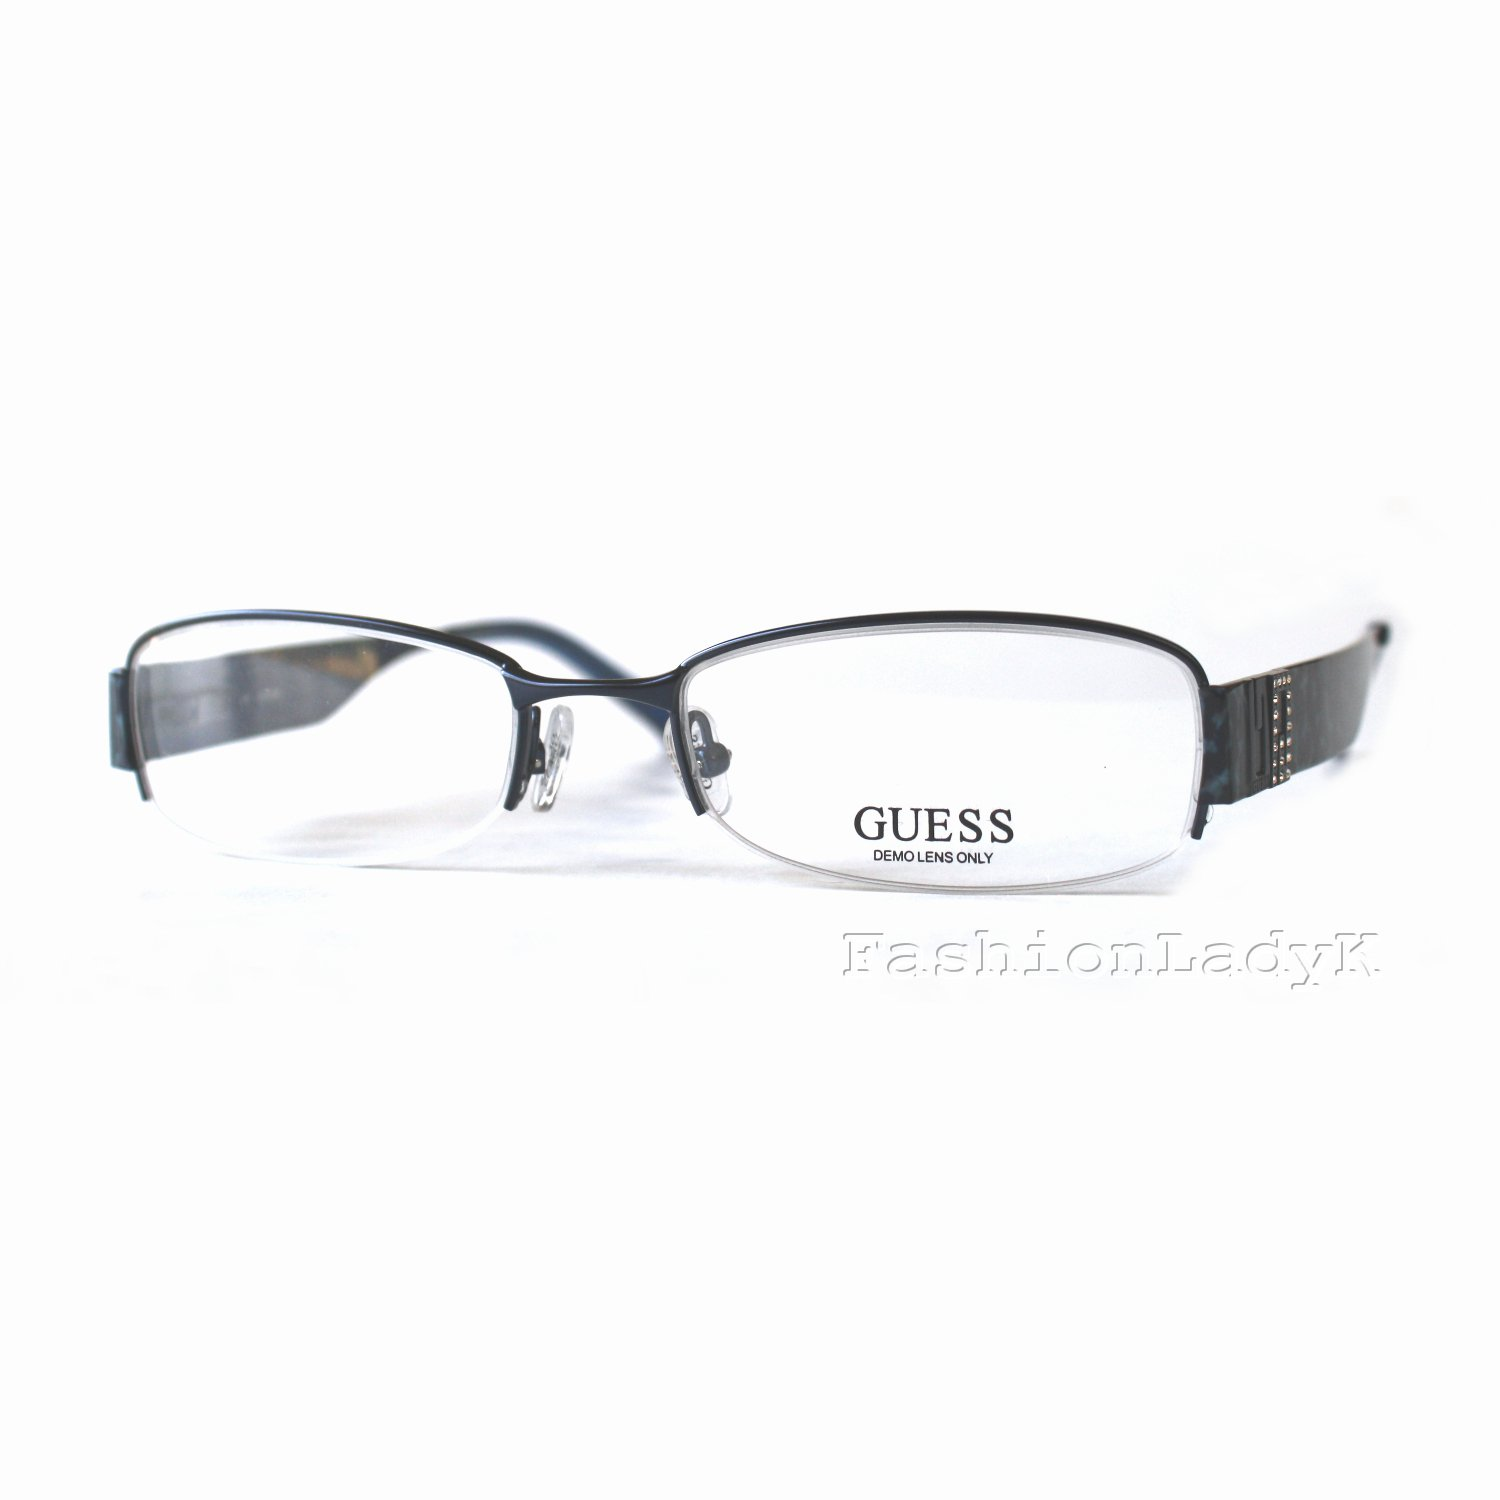 GUESS Blue Optical Eyeglasses Frame GU1584ST NV 52mm New w/ Case